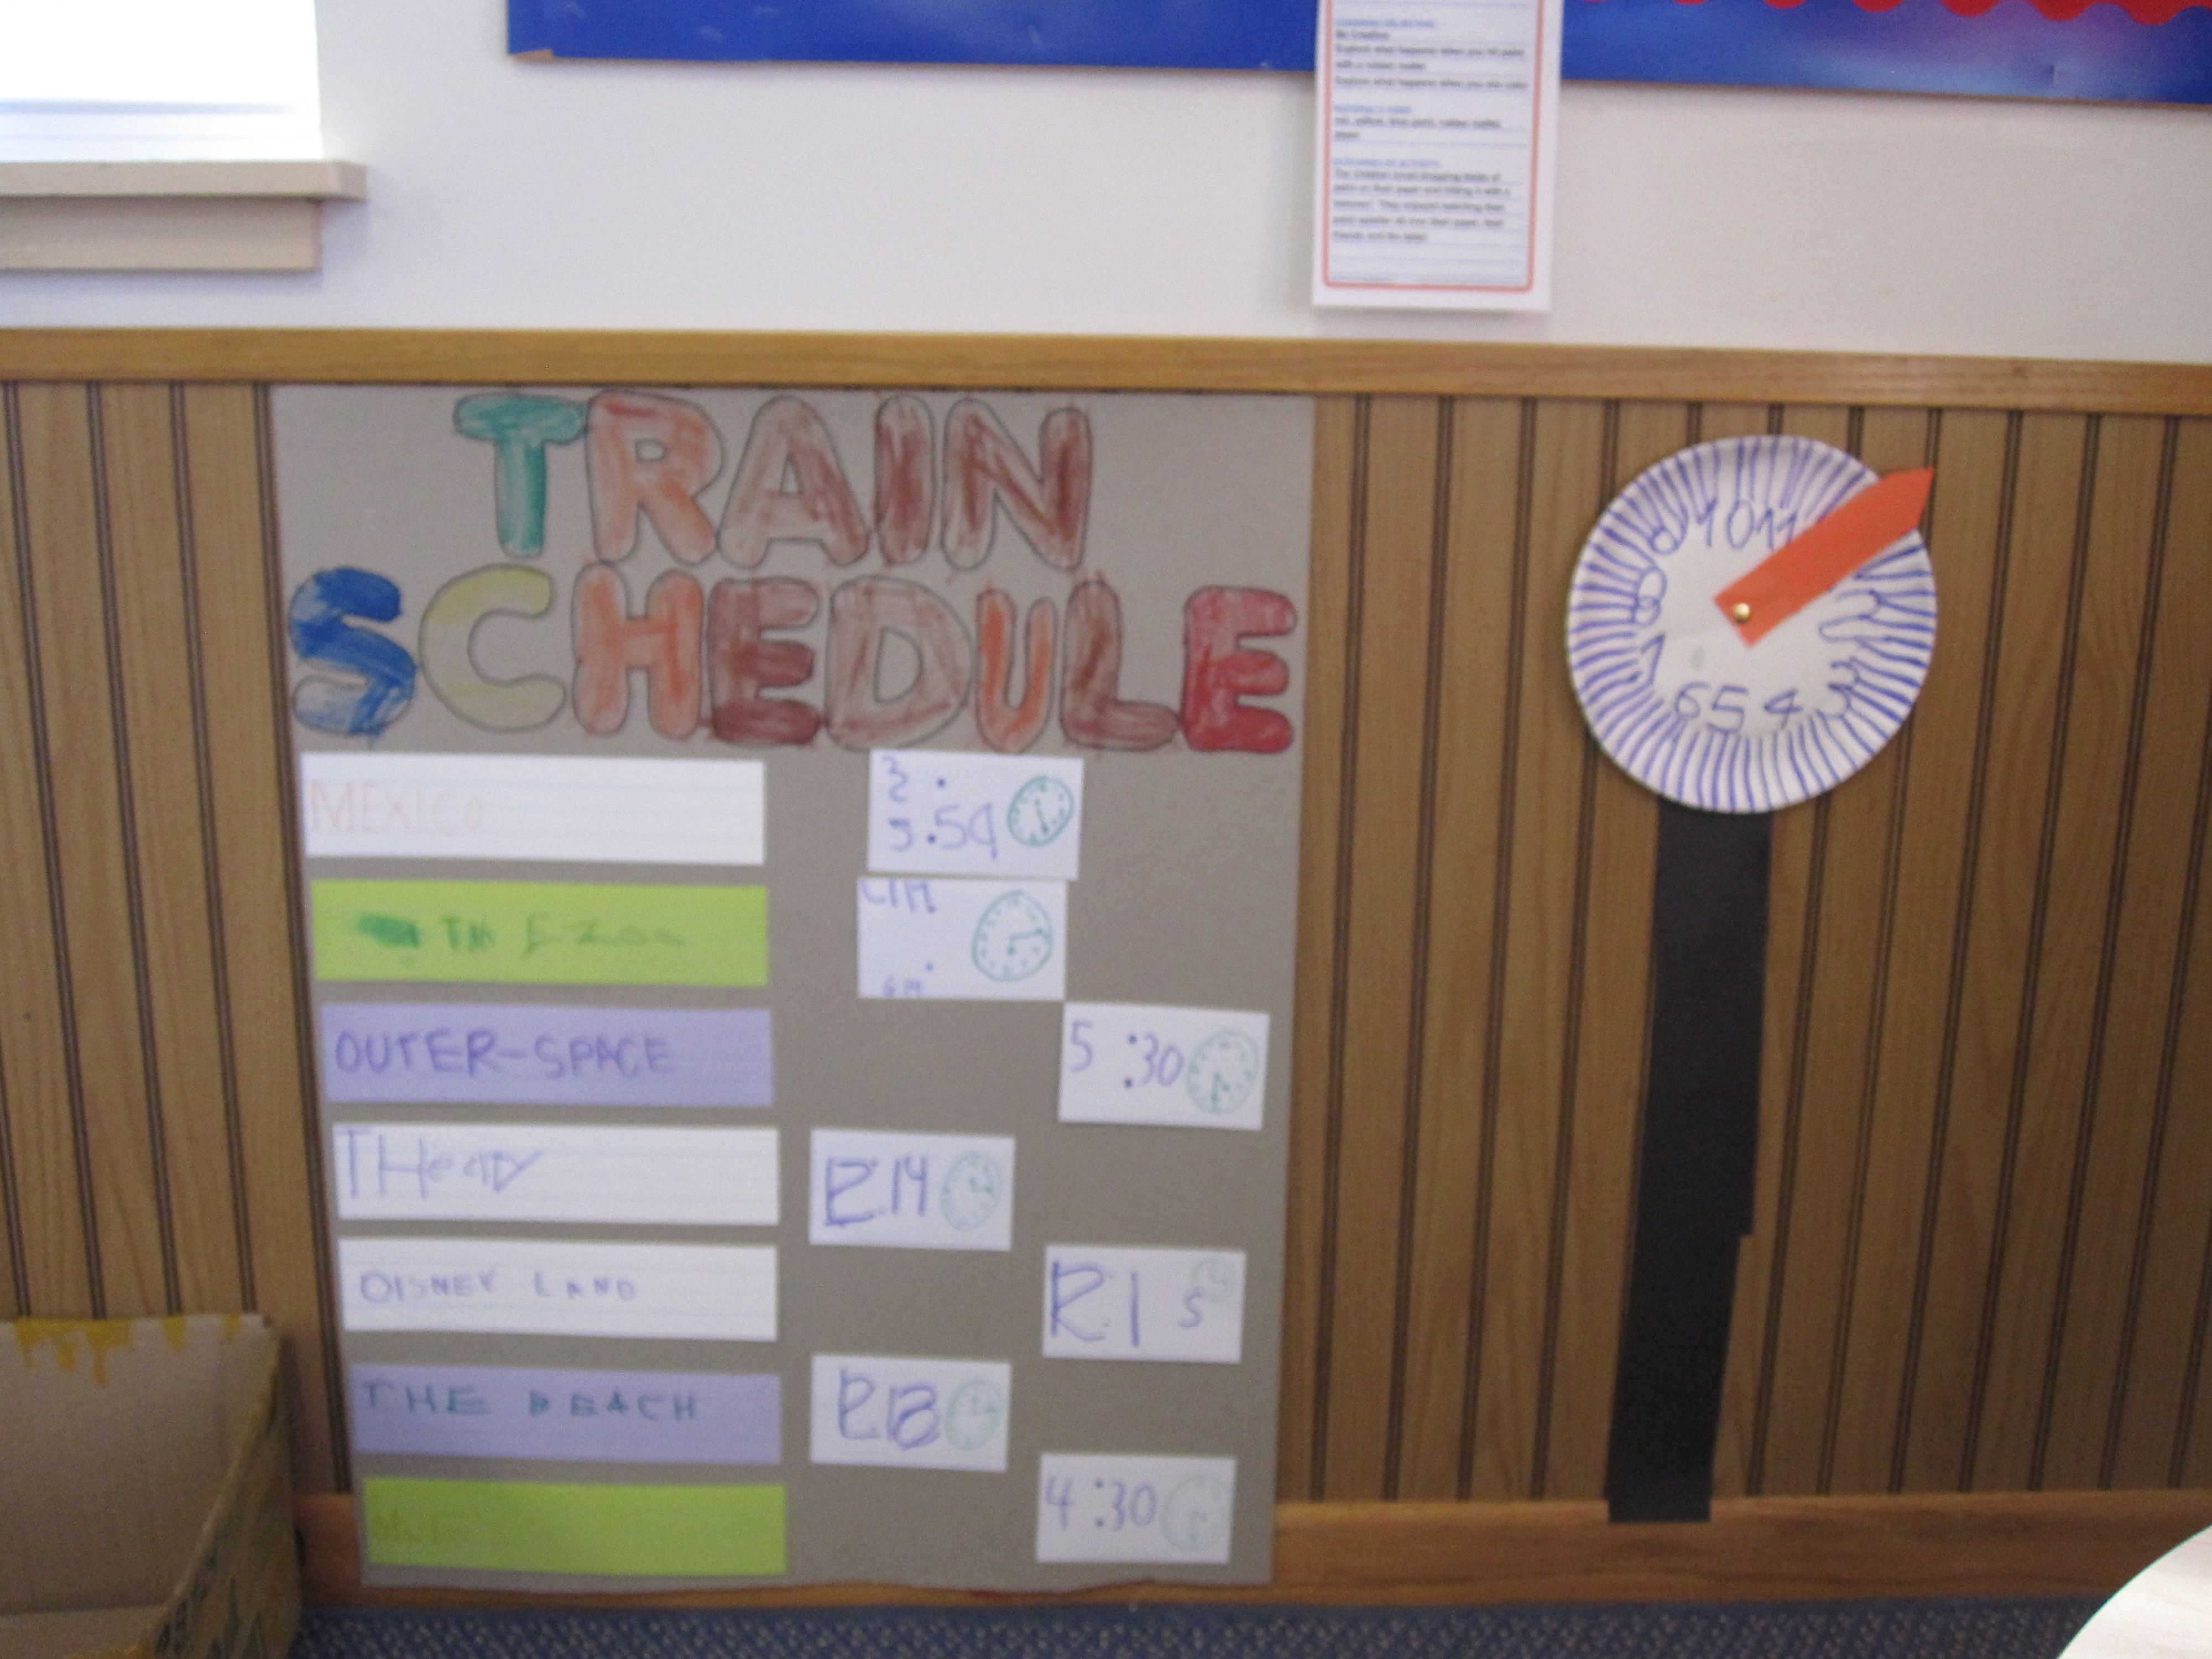 train schedule for our train station transportation pinterest